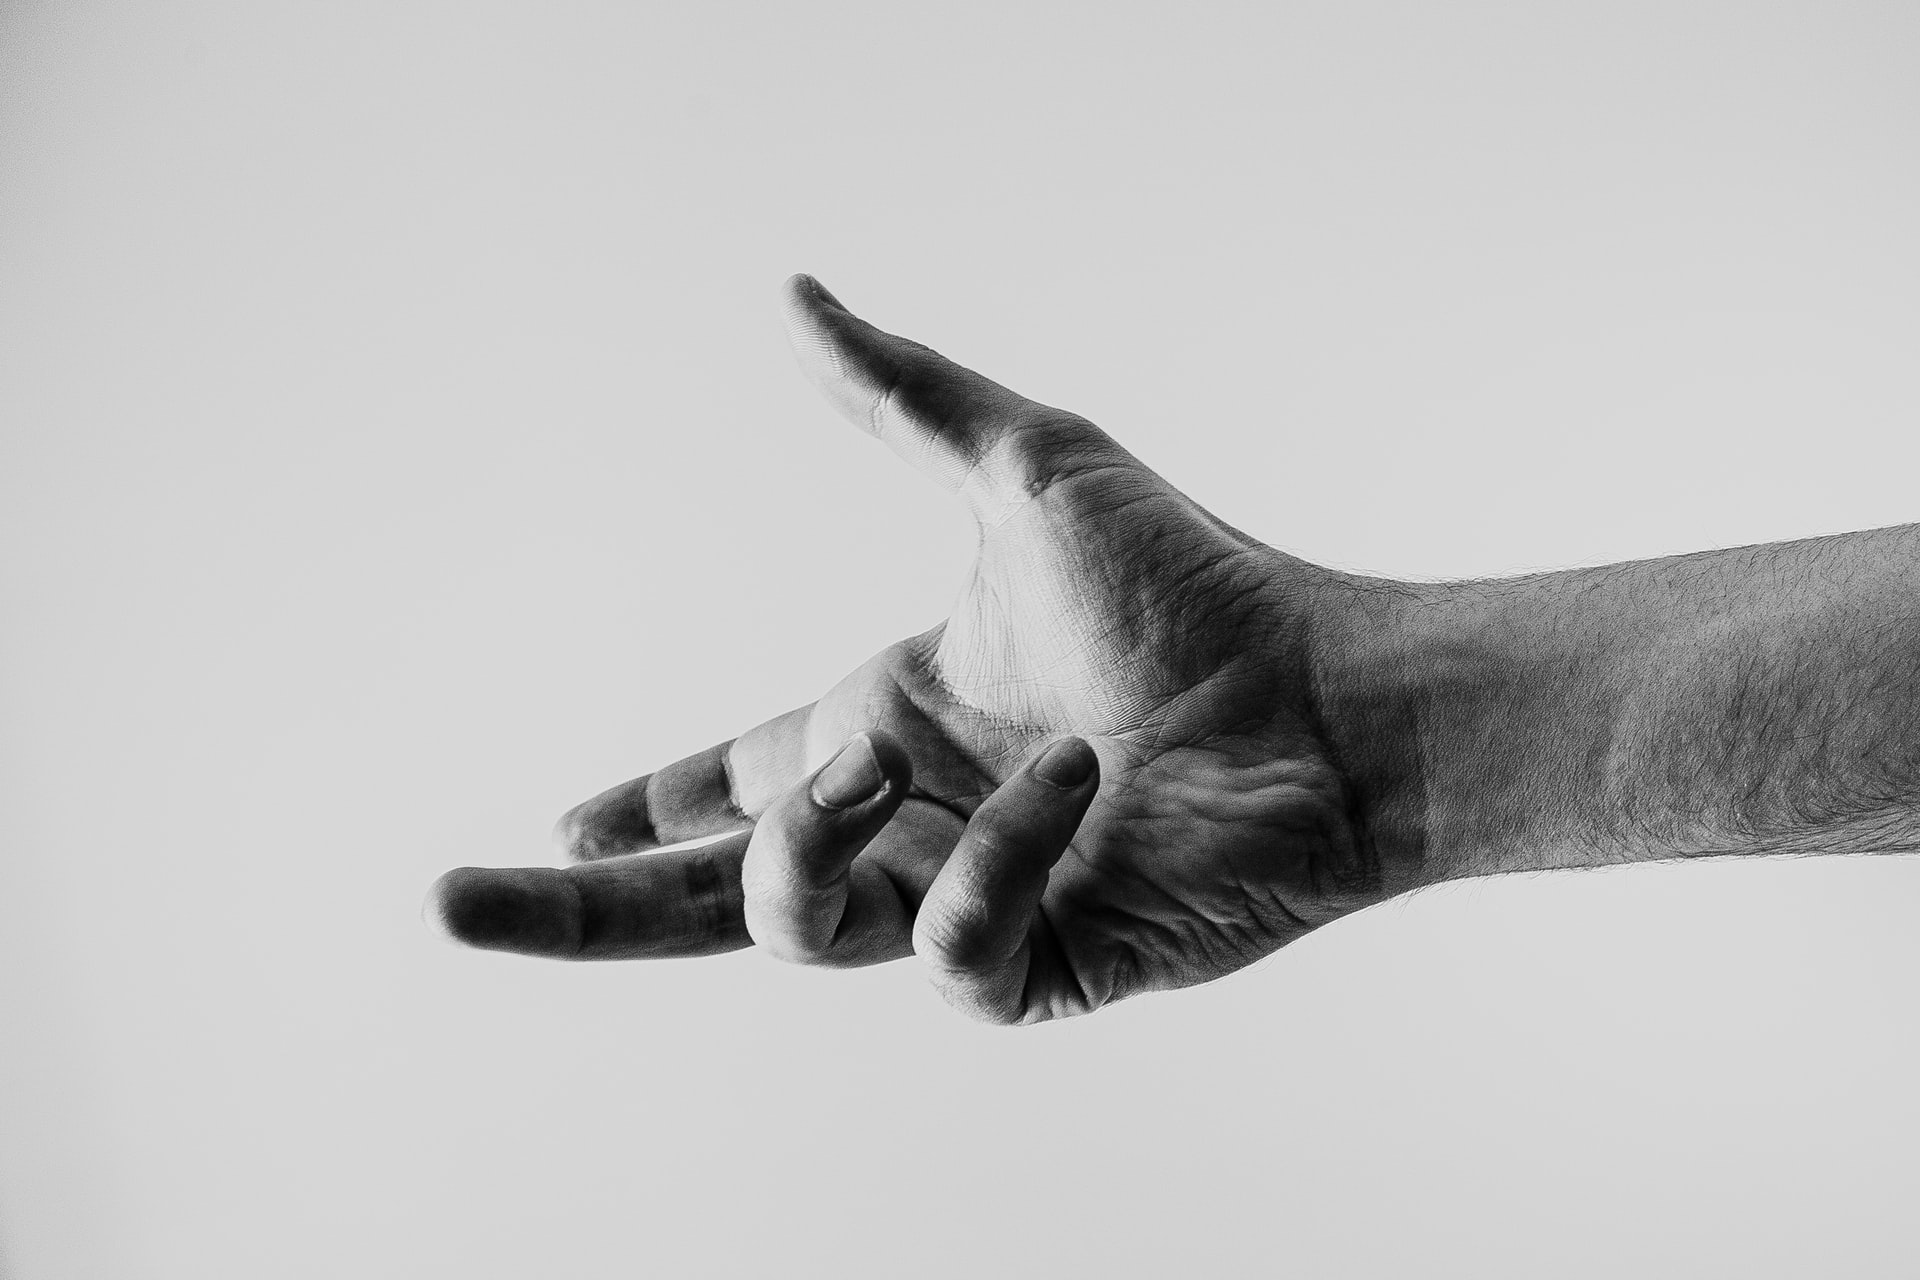 A black and white photo of an outstretched hand. Photo courtesy of Ave Calvar on Unsplash.